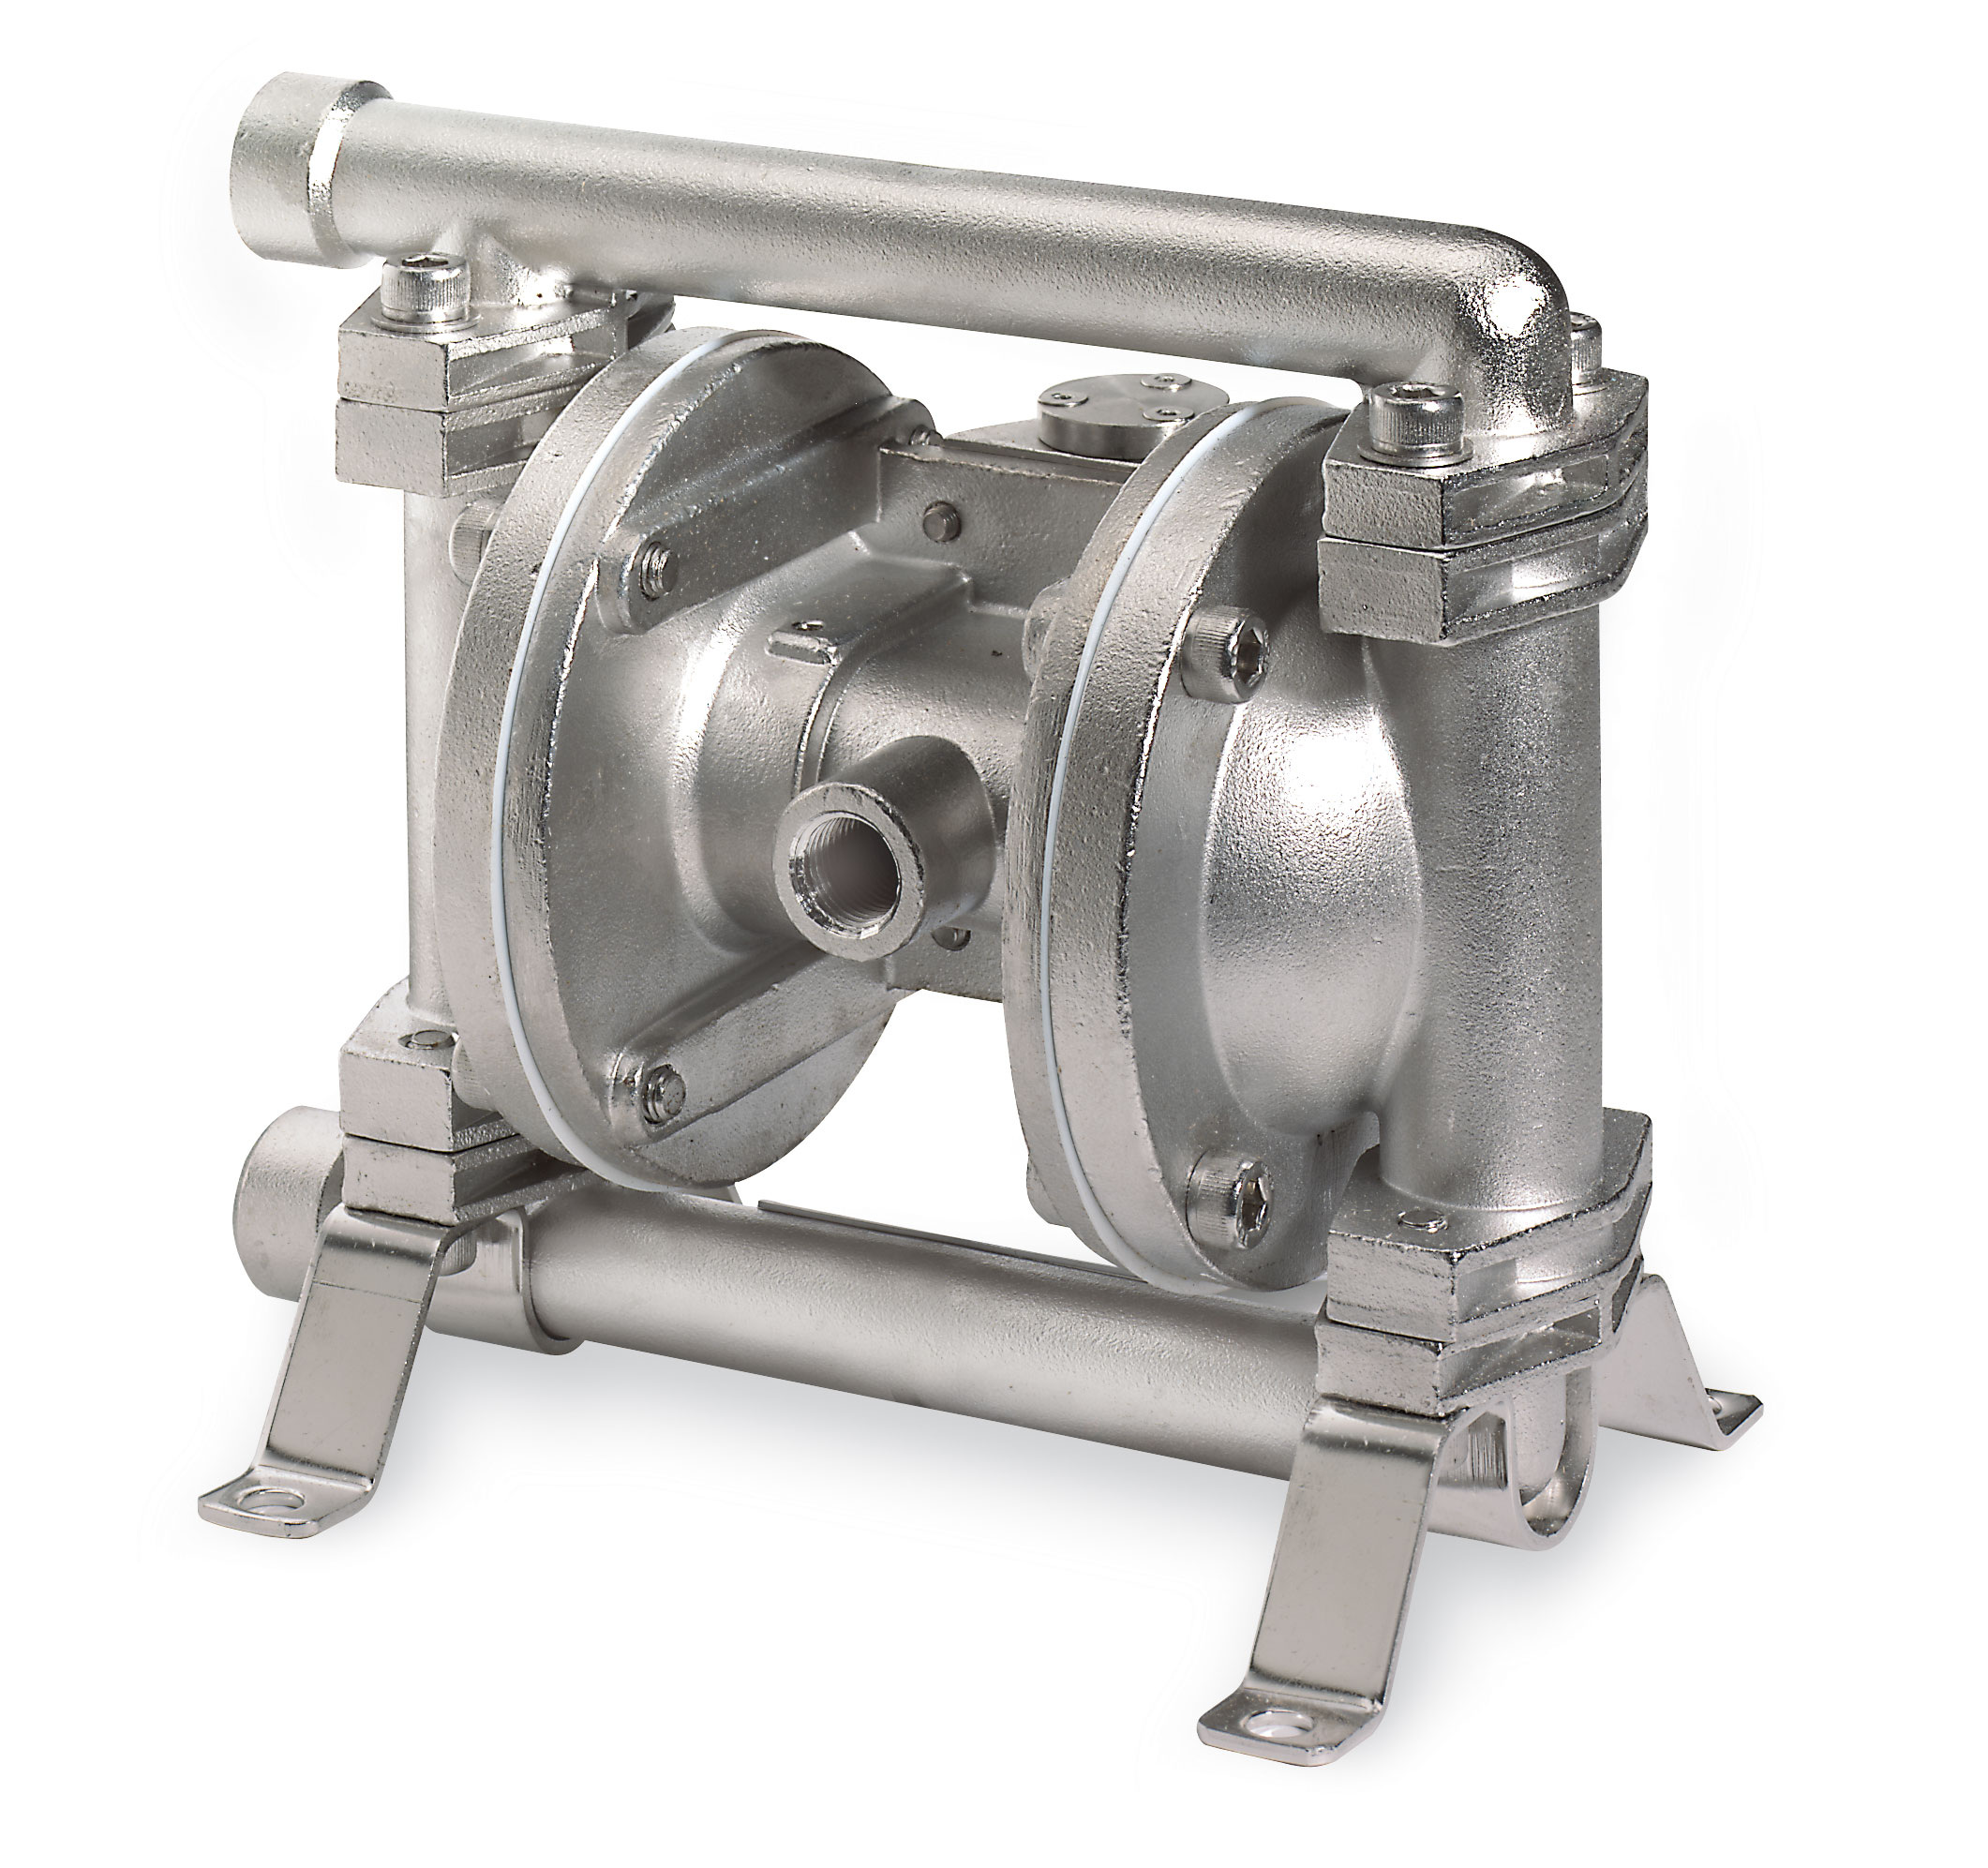 Atex approved stainless steel double diaphragm pump gpm